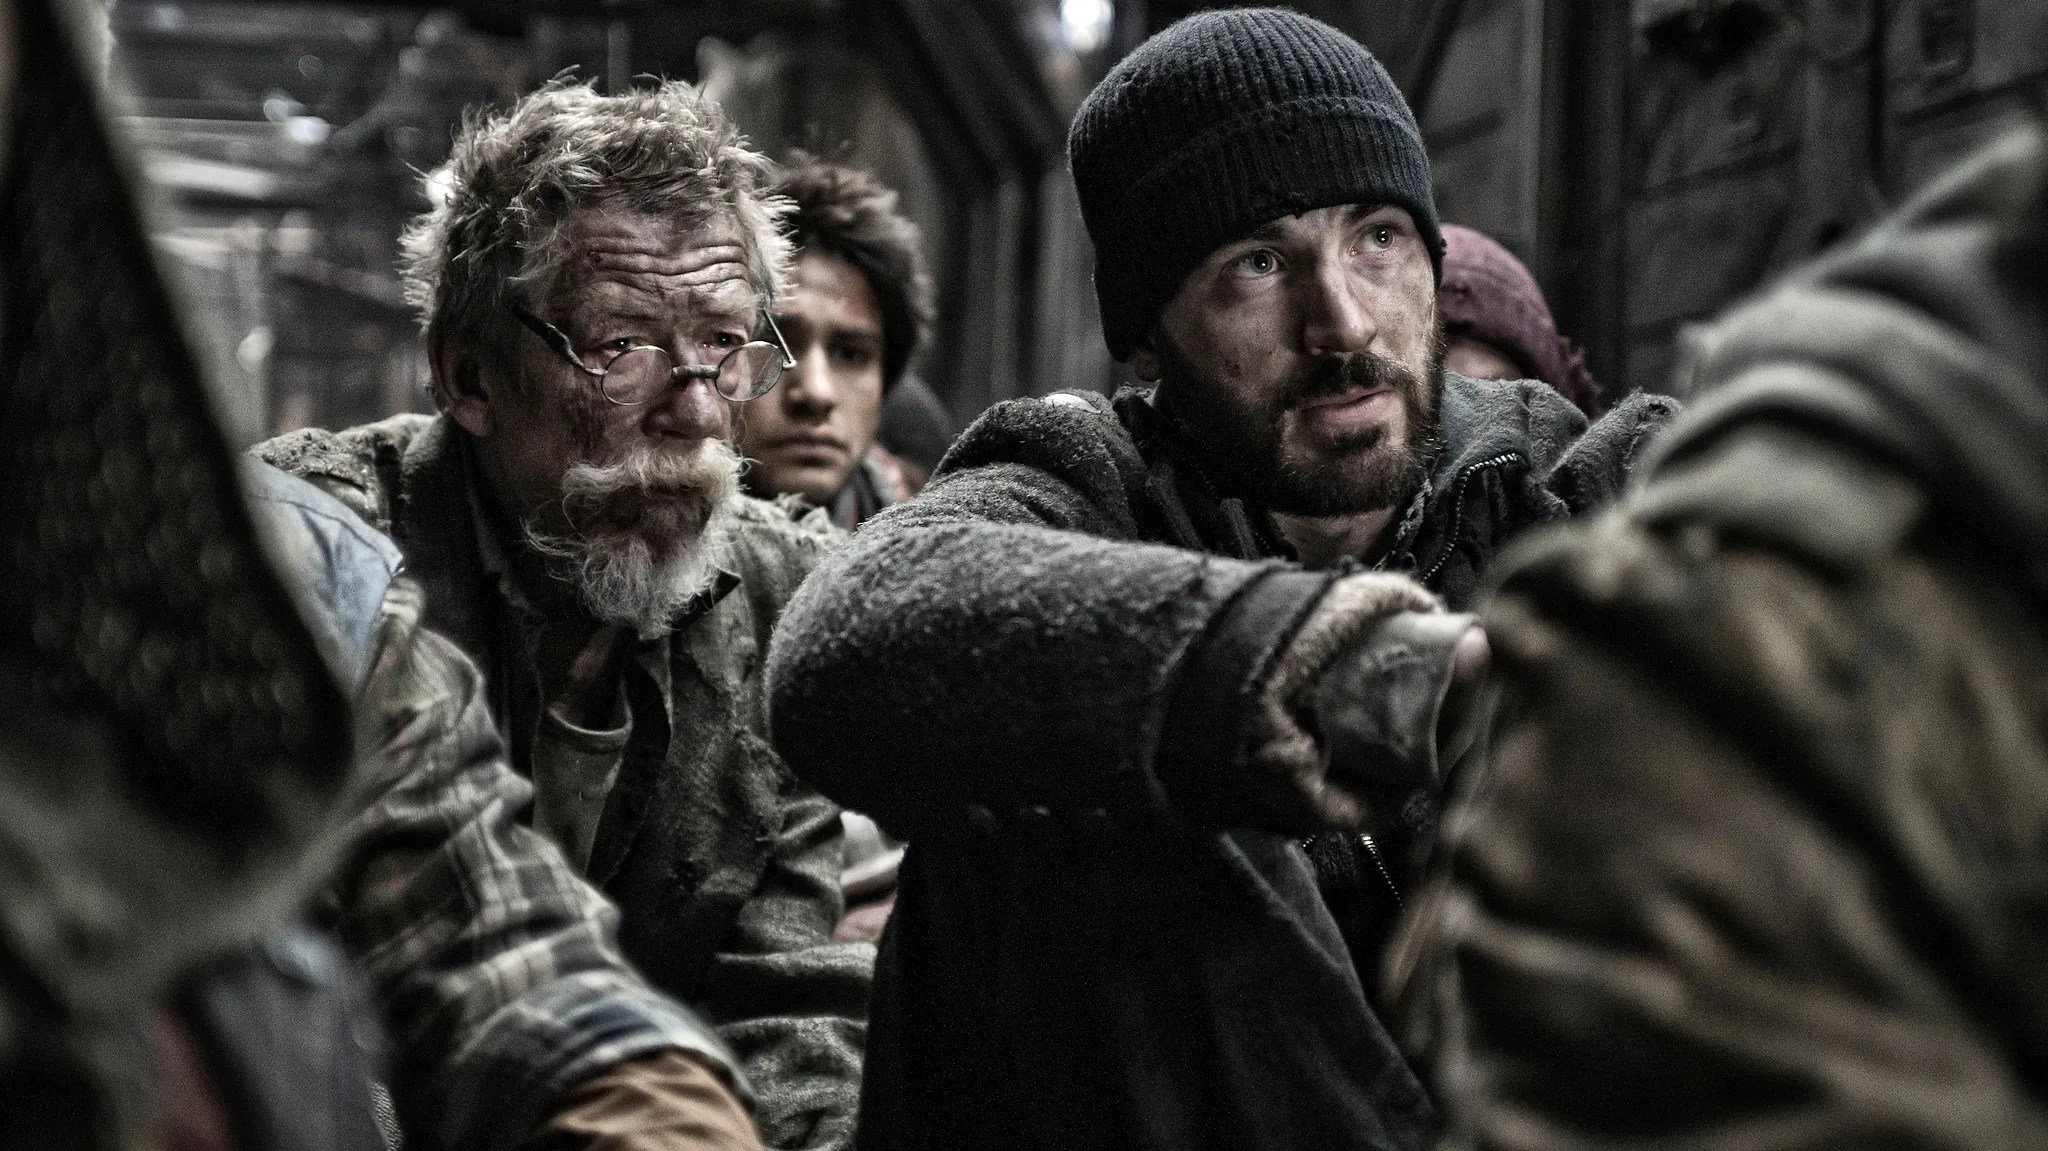 Stylish Snowpiercer Takes A Cold Look At Class Divisions